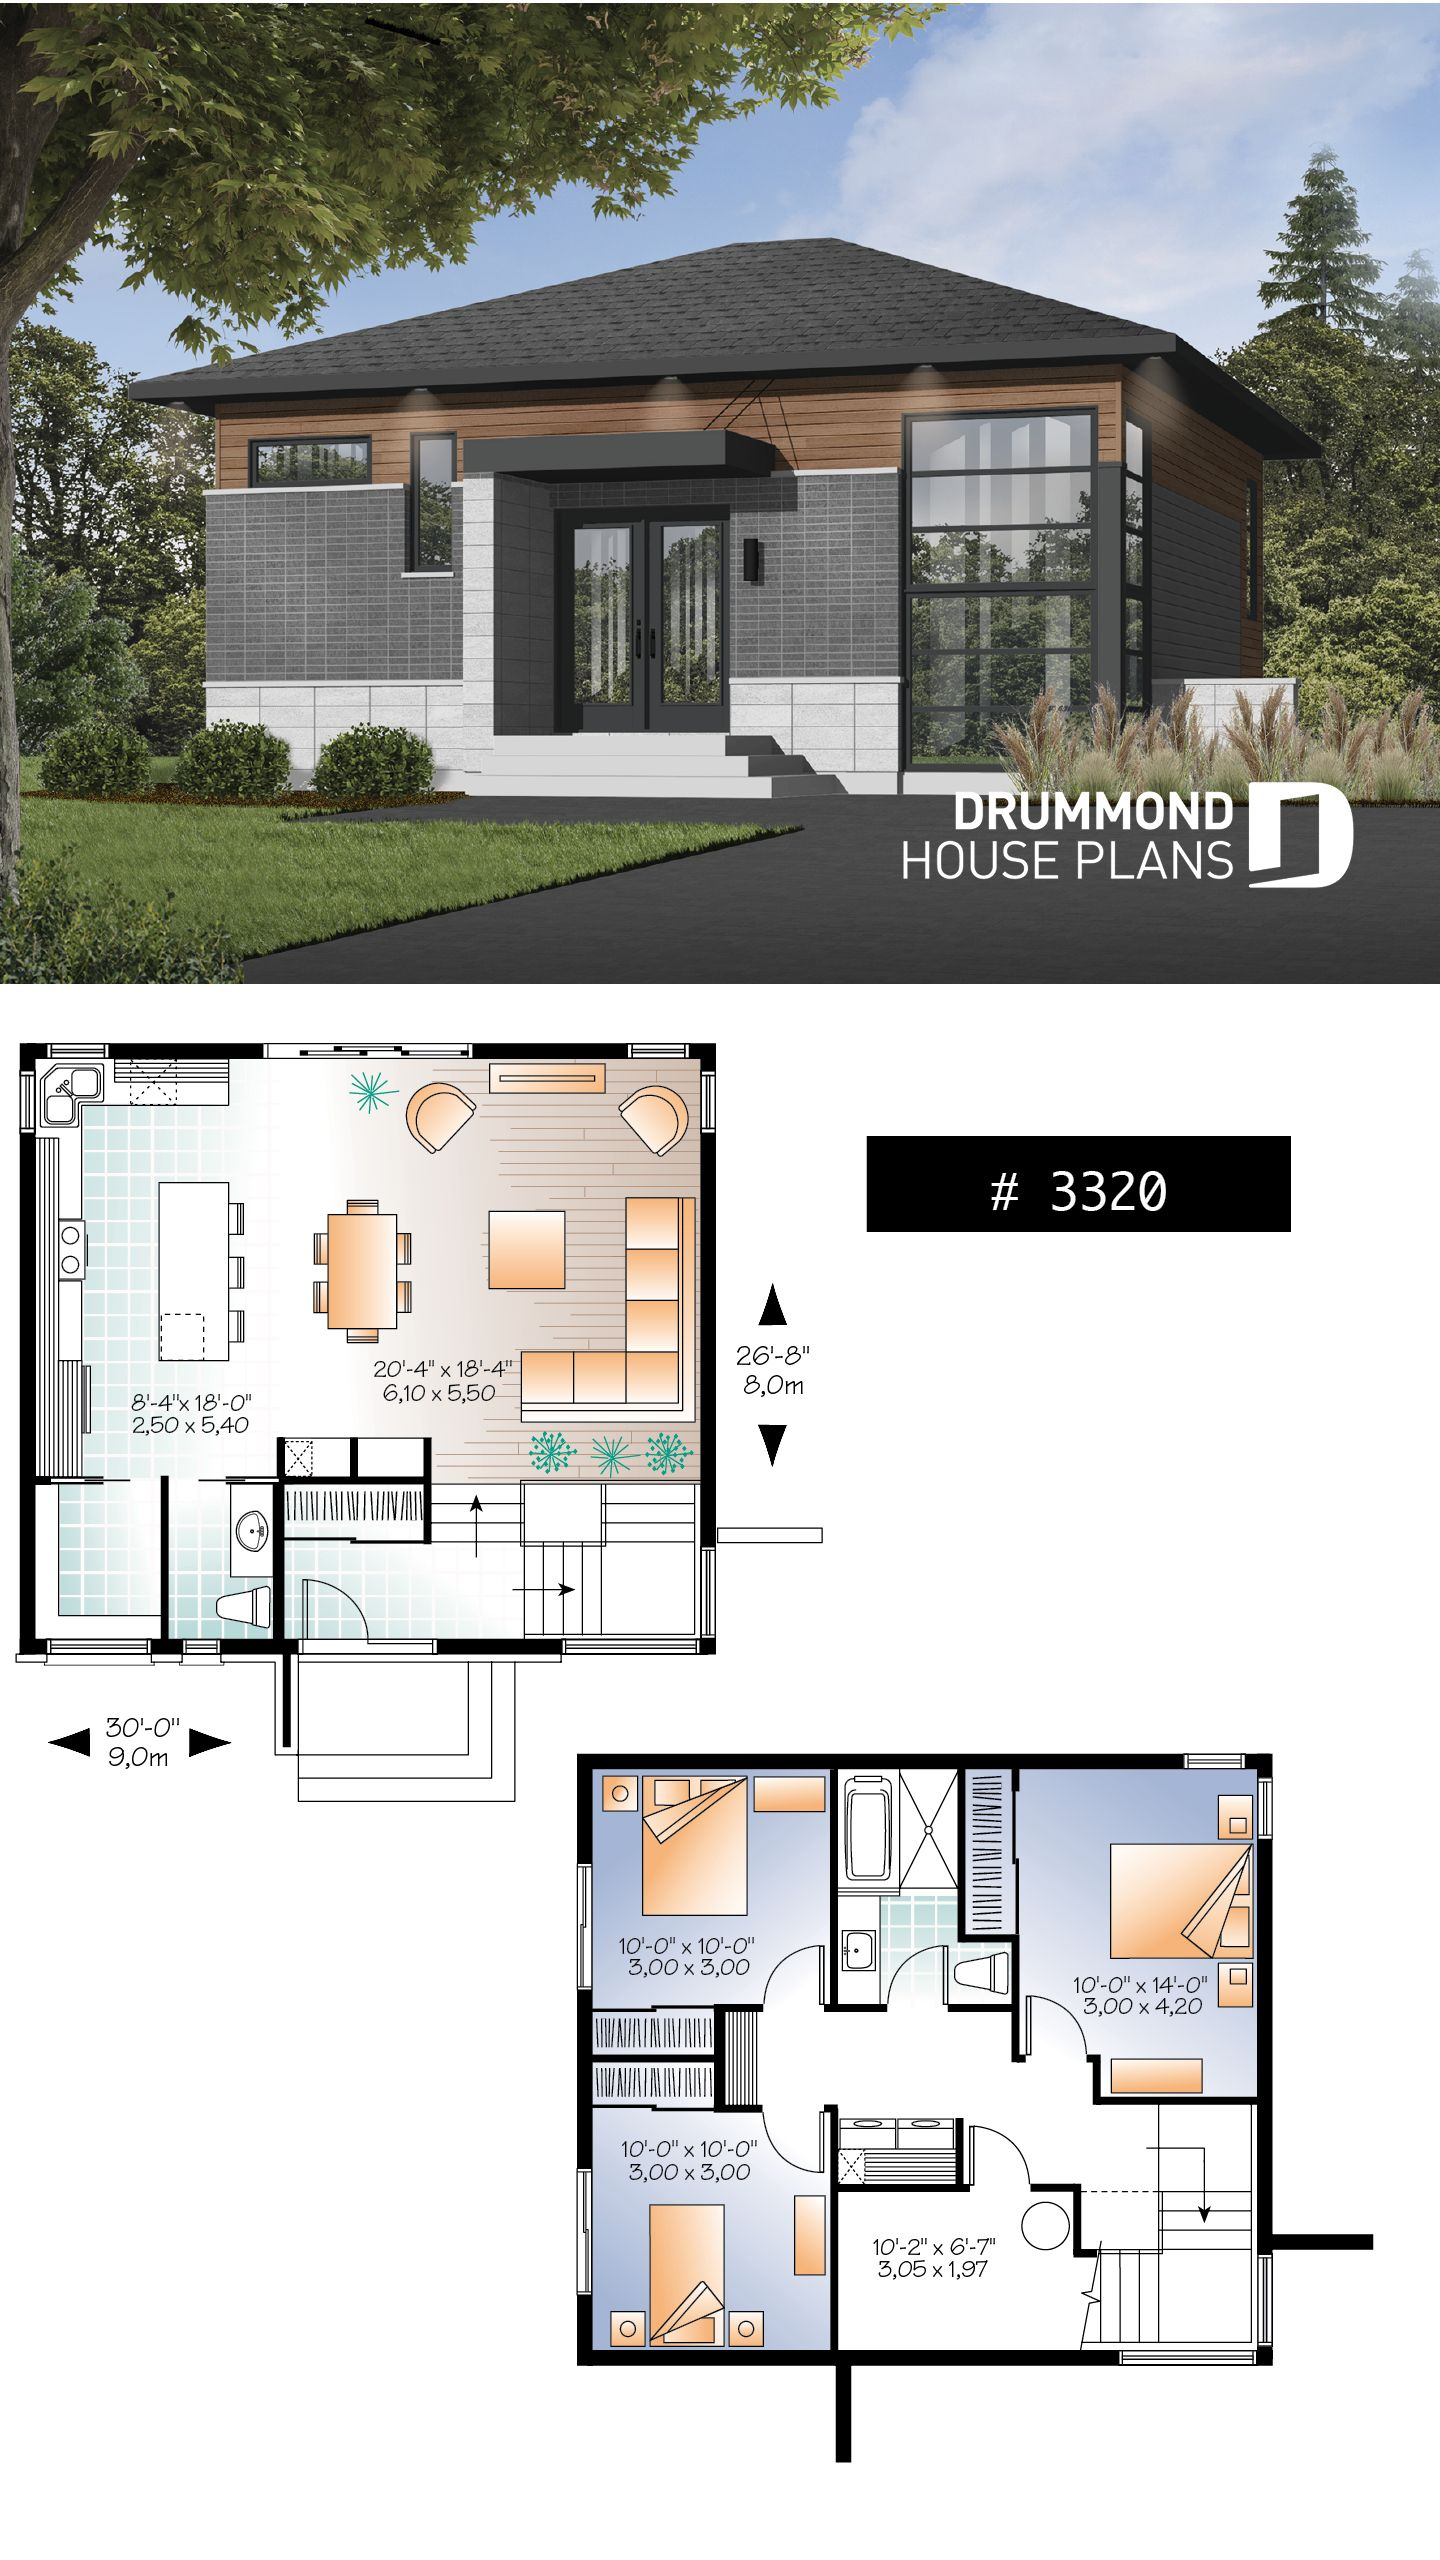 Small 3 bedroom budget conscious modern house plan, open